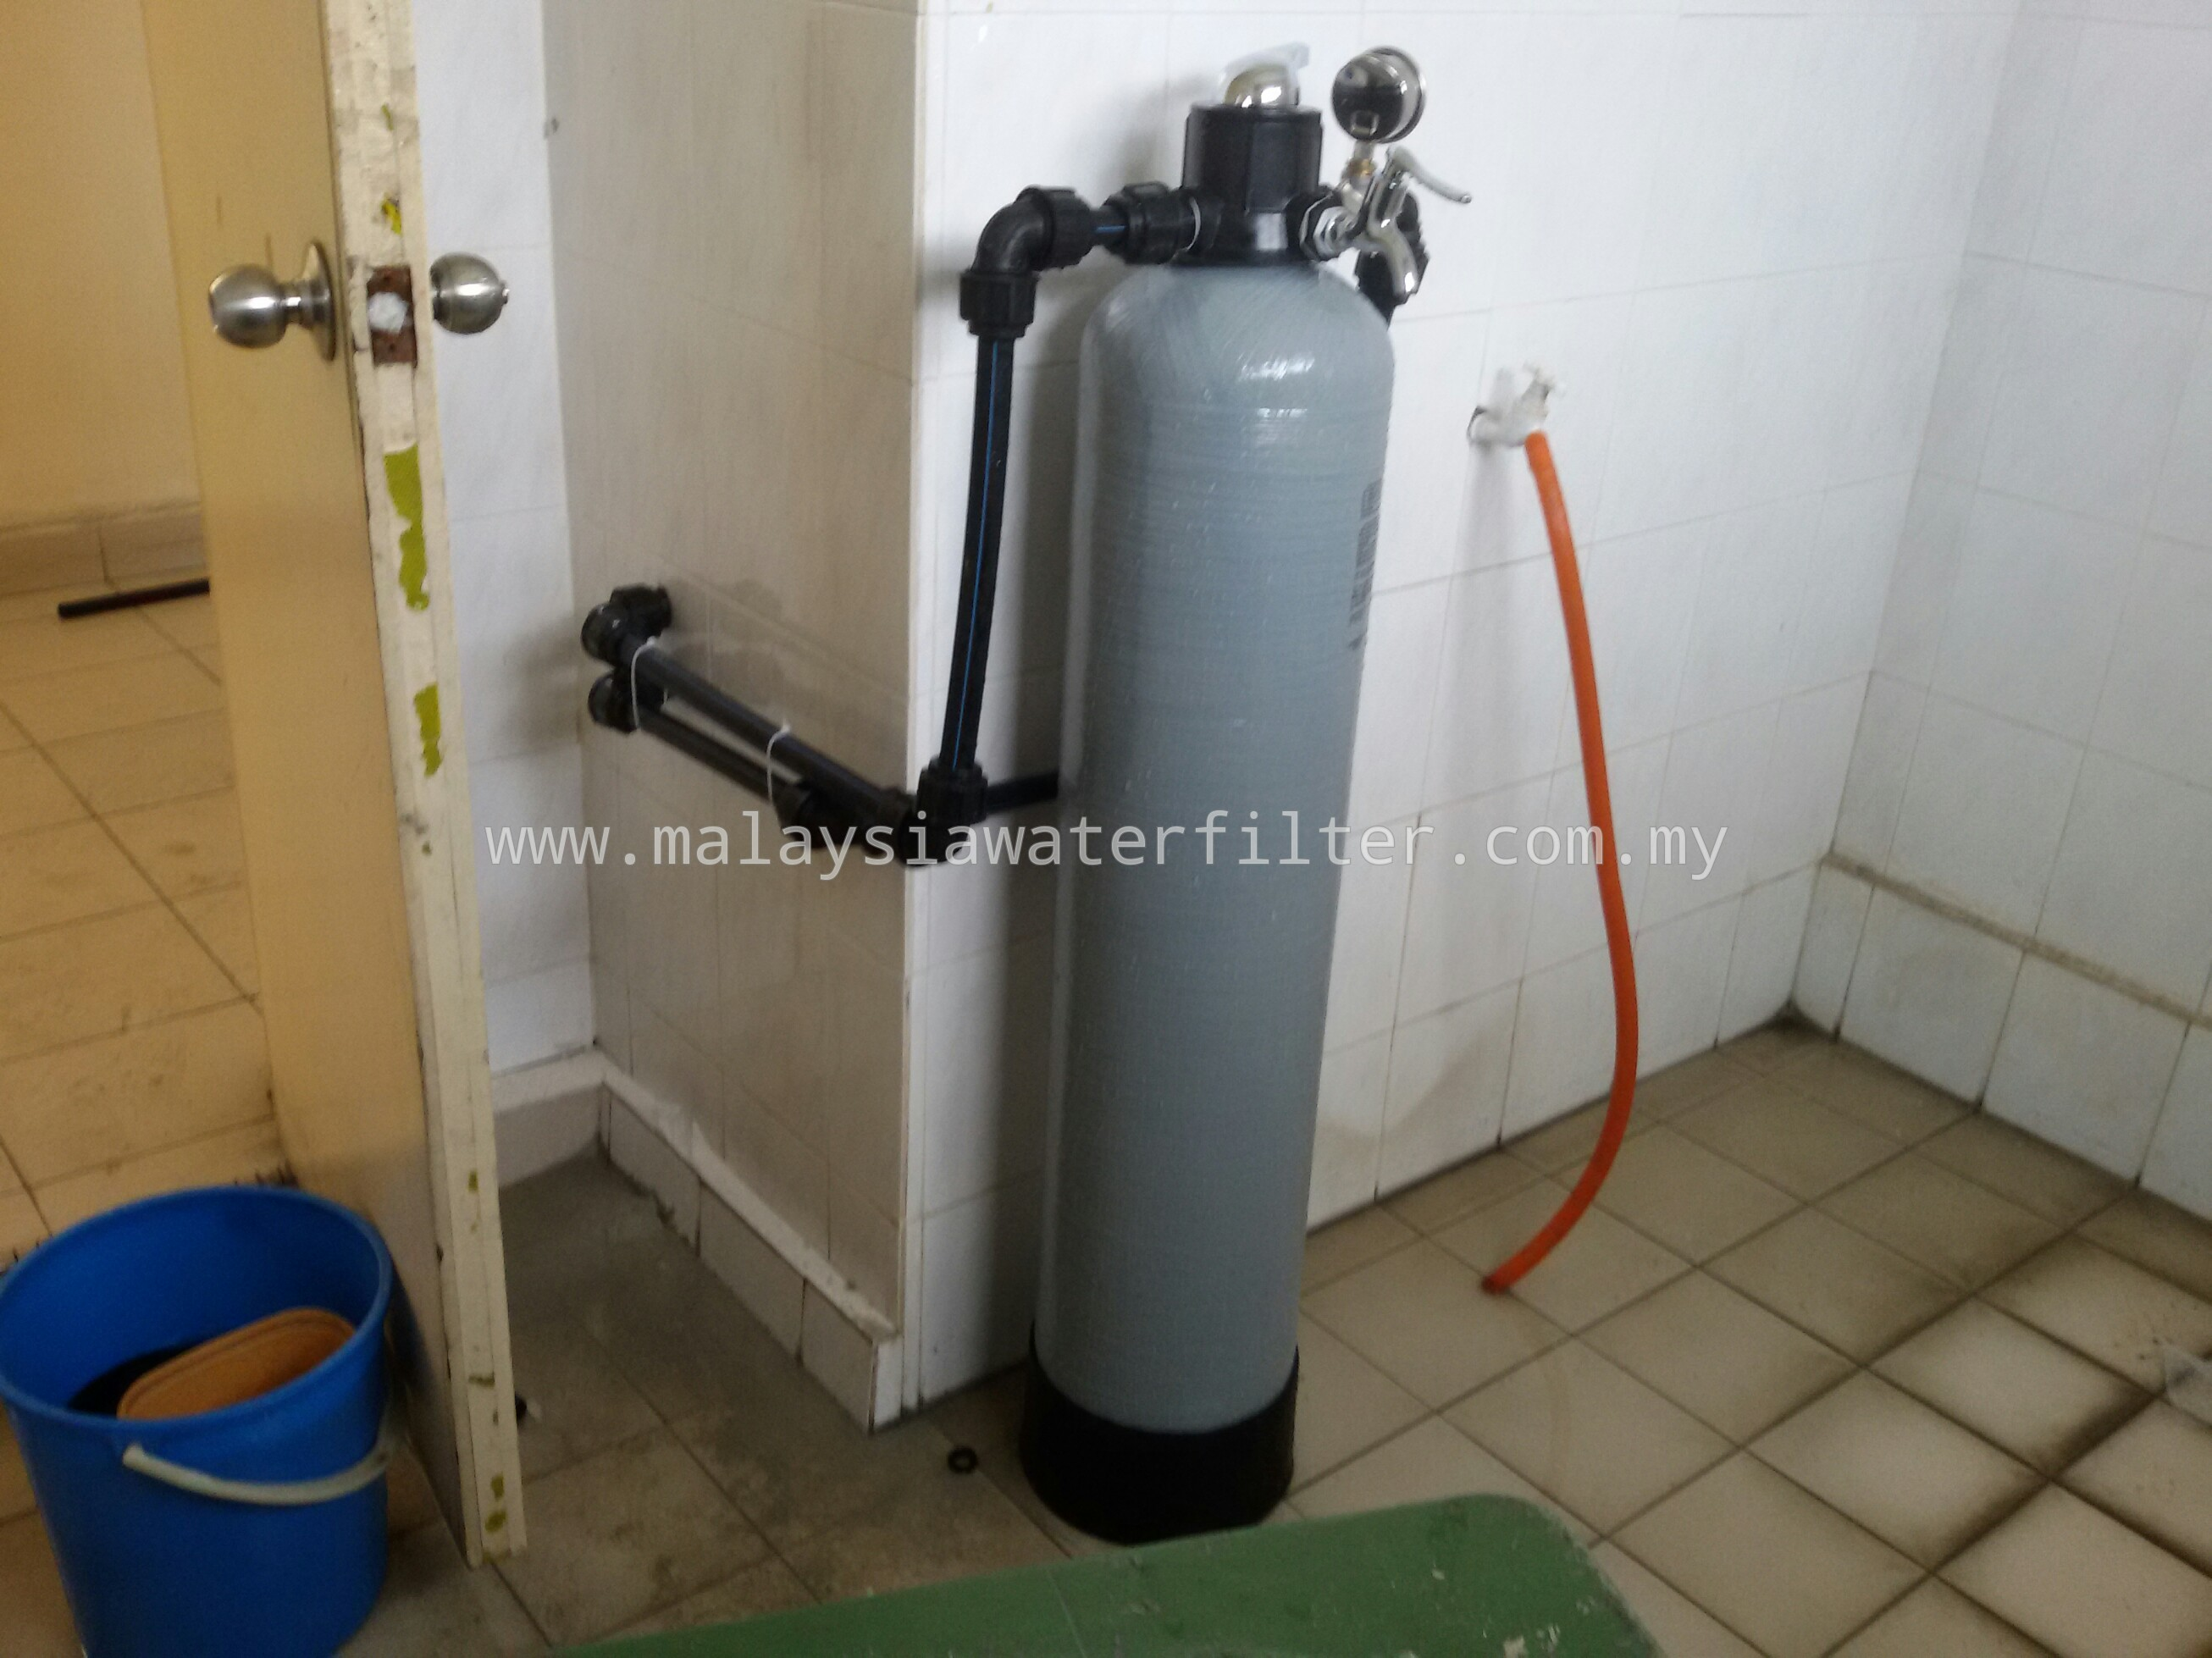 Installation case 11 frp 09 x42 fiberglass outdoor for Garden water filter system